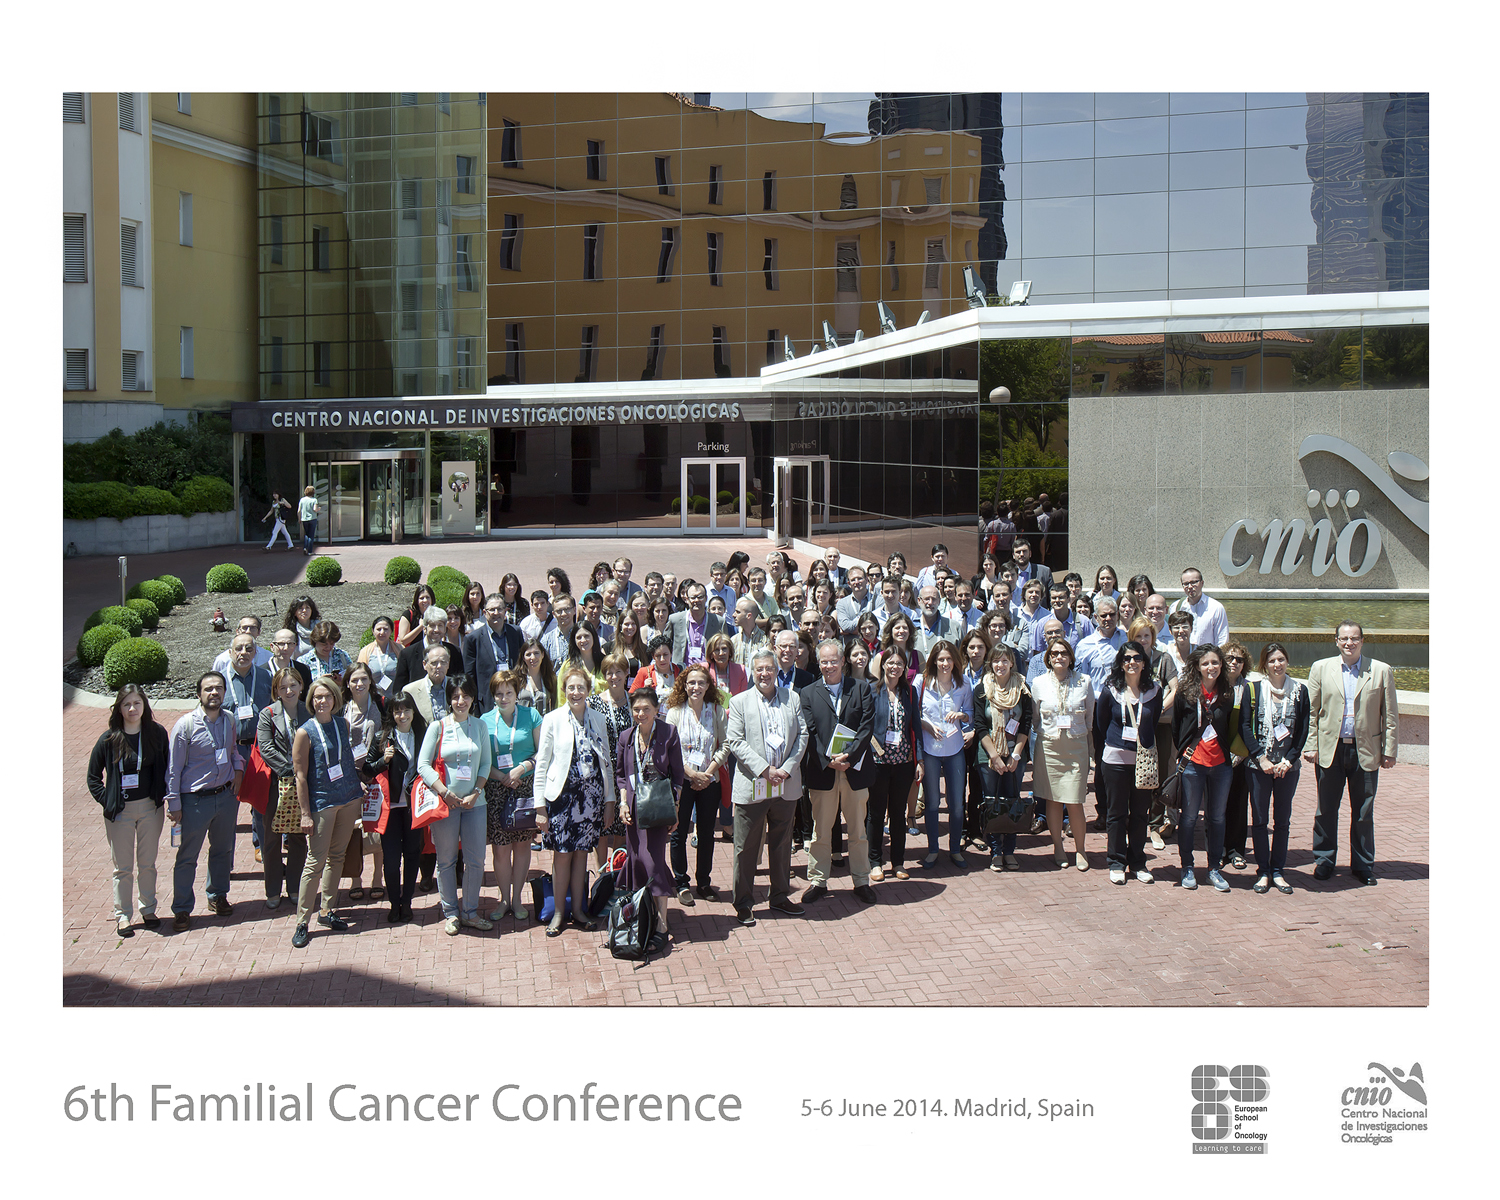 CNIO Familial conference ASACO 5-6 junio 2014 ASACO cancer ovario